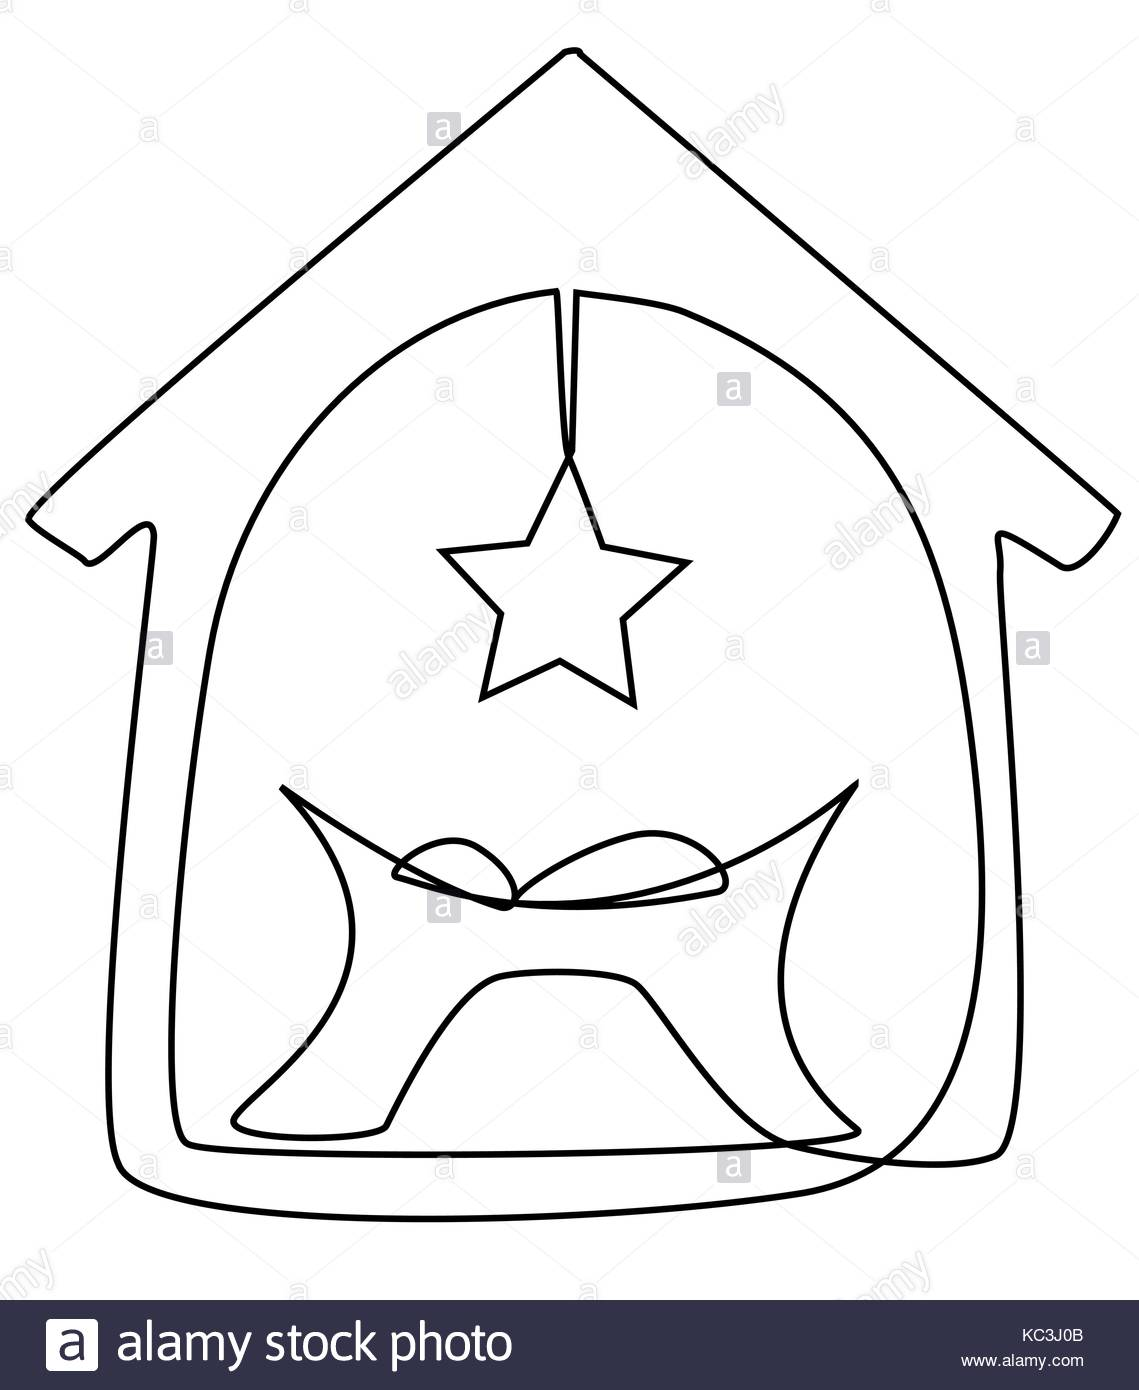 1139x1390 Jesus Baby Child One Line Drawing Stock Vector Art Amp Illustration